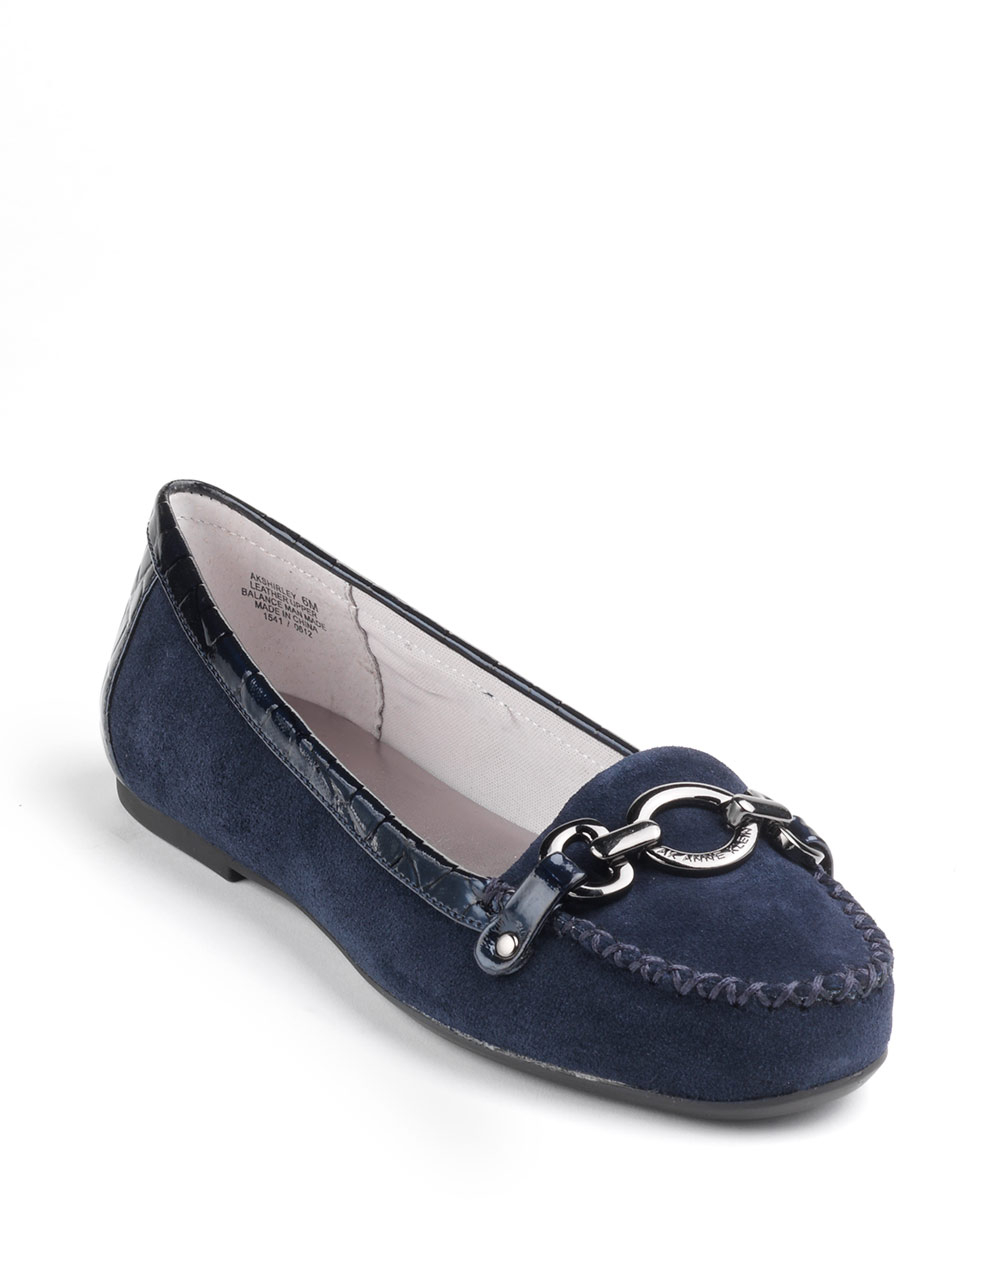 Anne Klein Sport Oma Flat Womens Shoes | DSW | Flat shoes